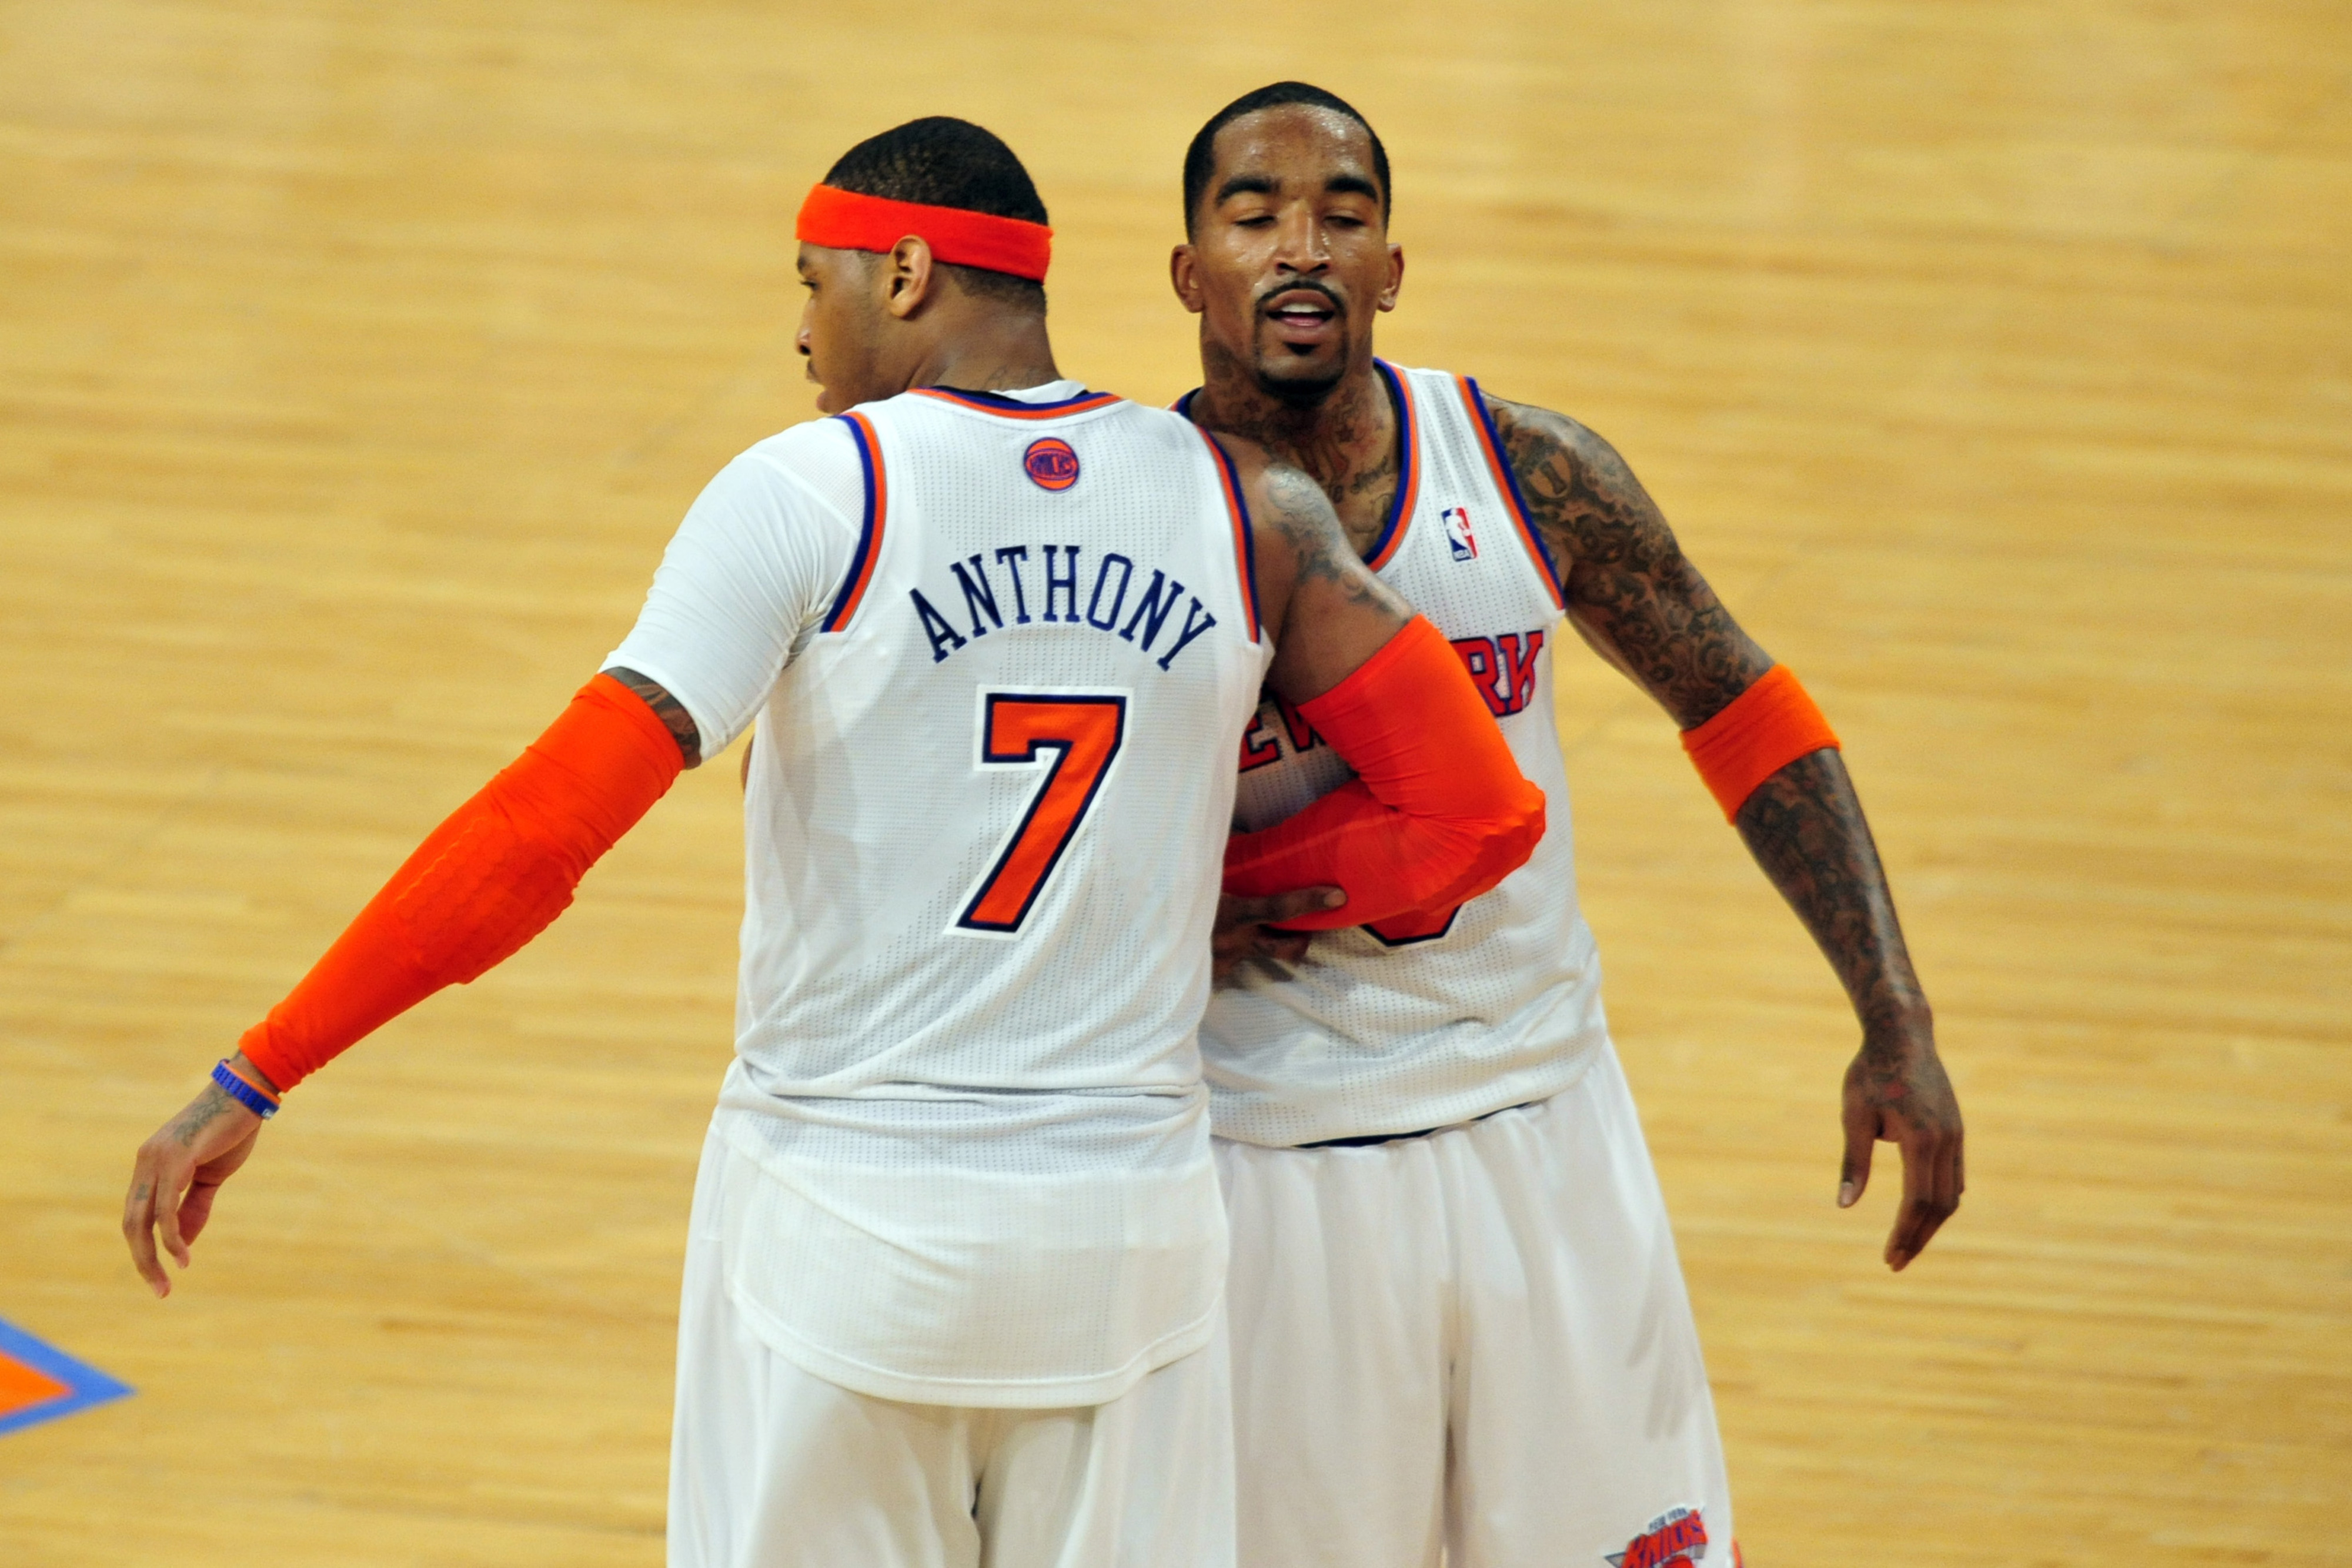 Knicks schedule 2013: Plenty of big matchups in improved Eastern Conference